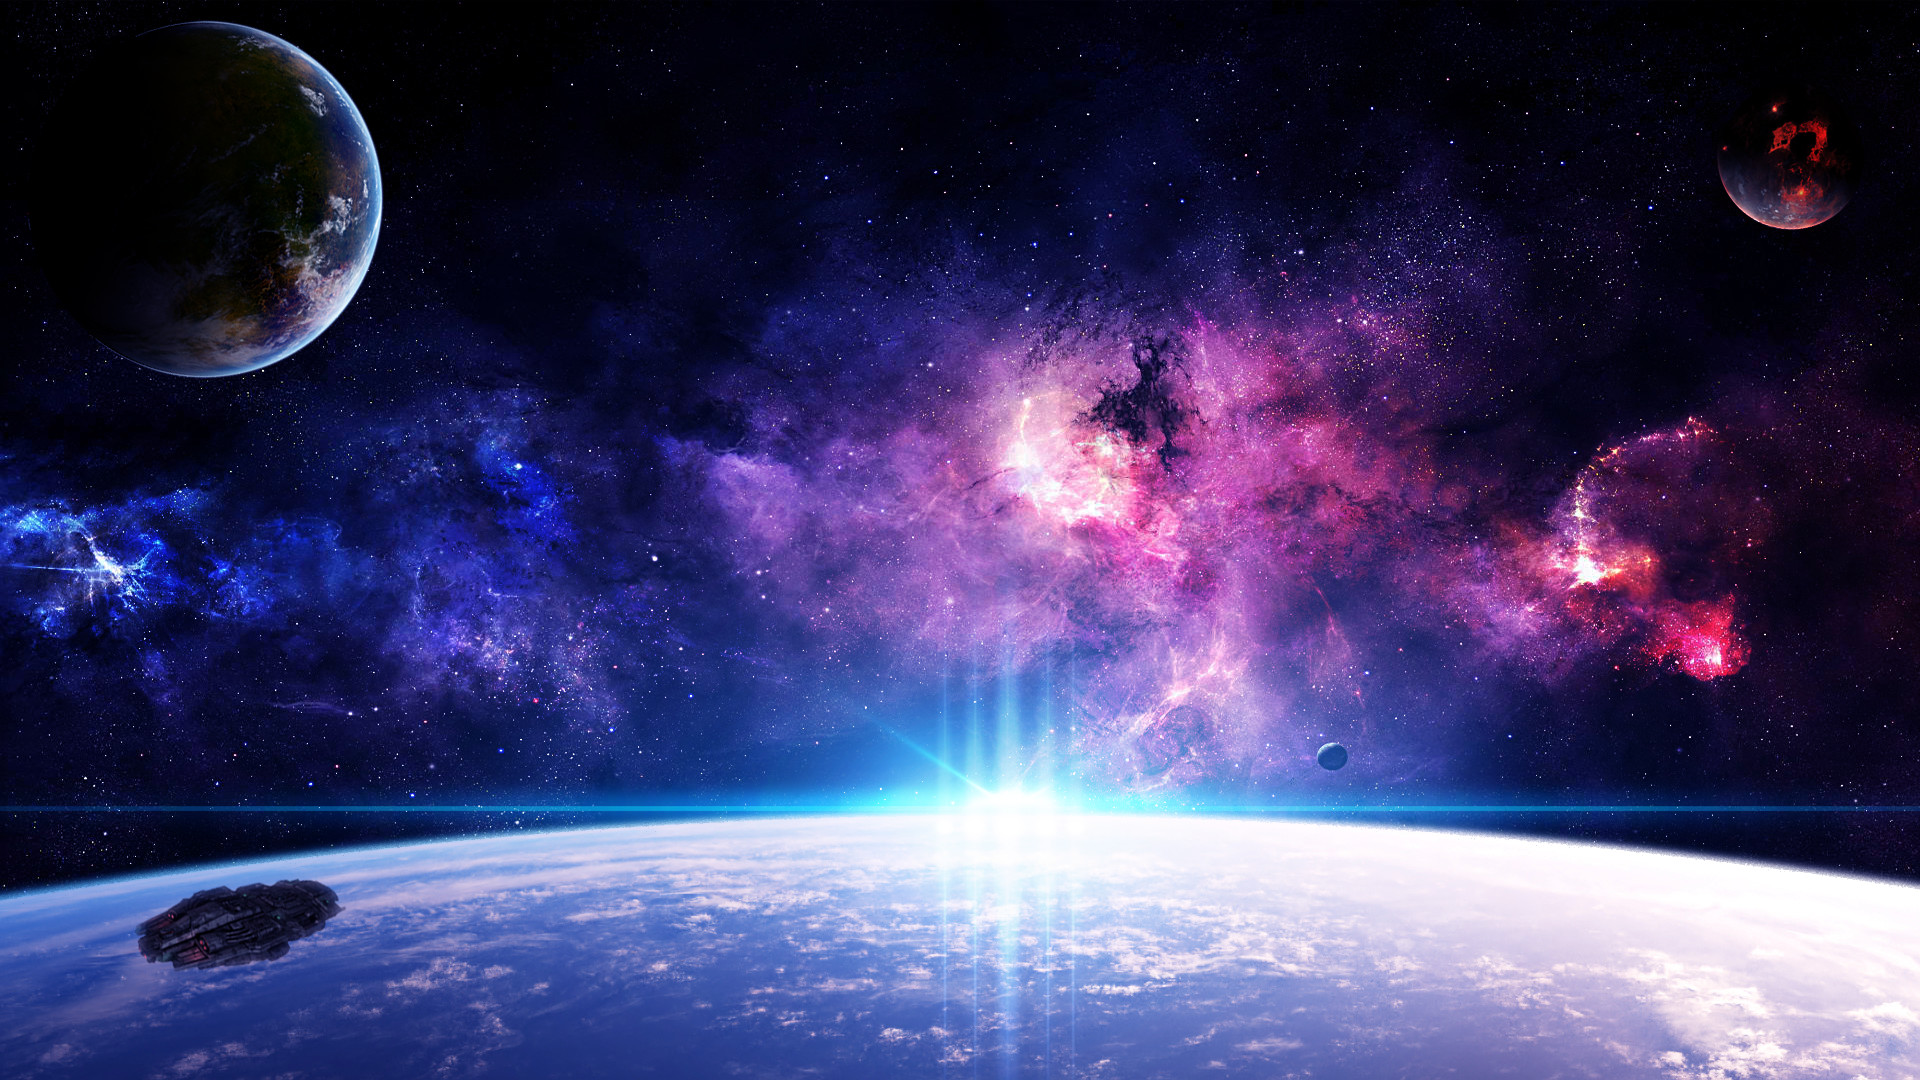 Space-Hd-Wallpapers-1080P-wallpaper   Wallpapers Photos Pictures   Space    Pinterest   Hd wallpaper and Wallpaper